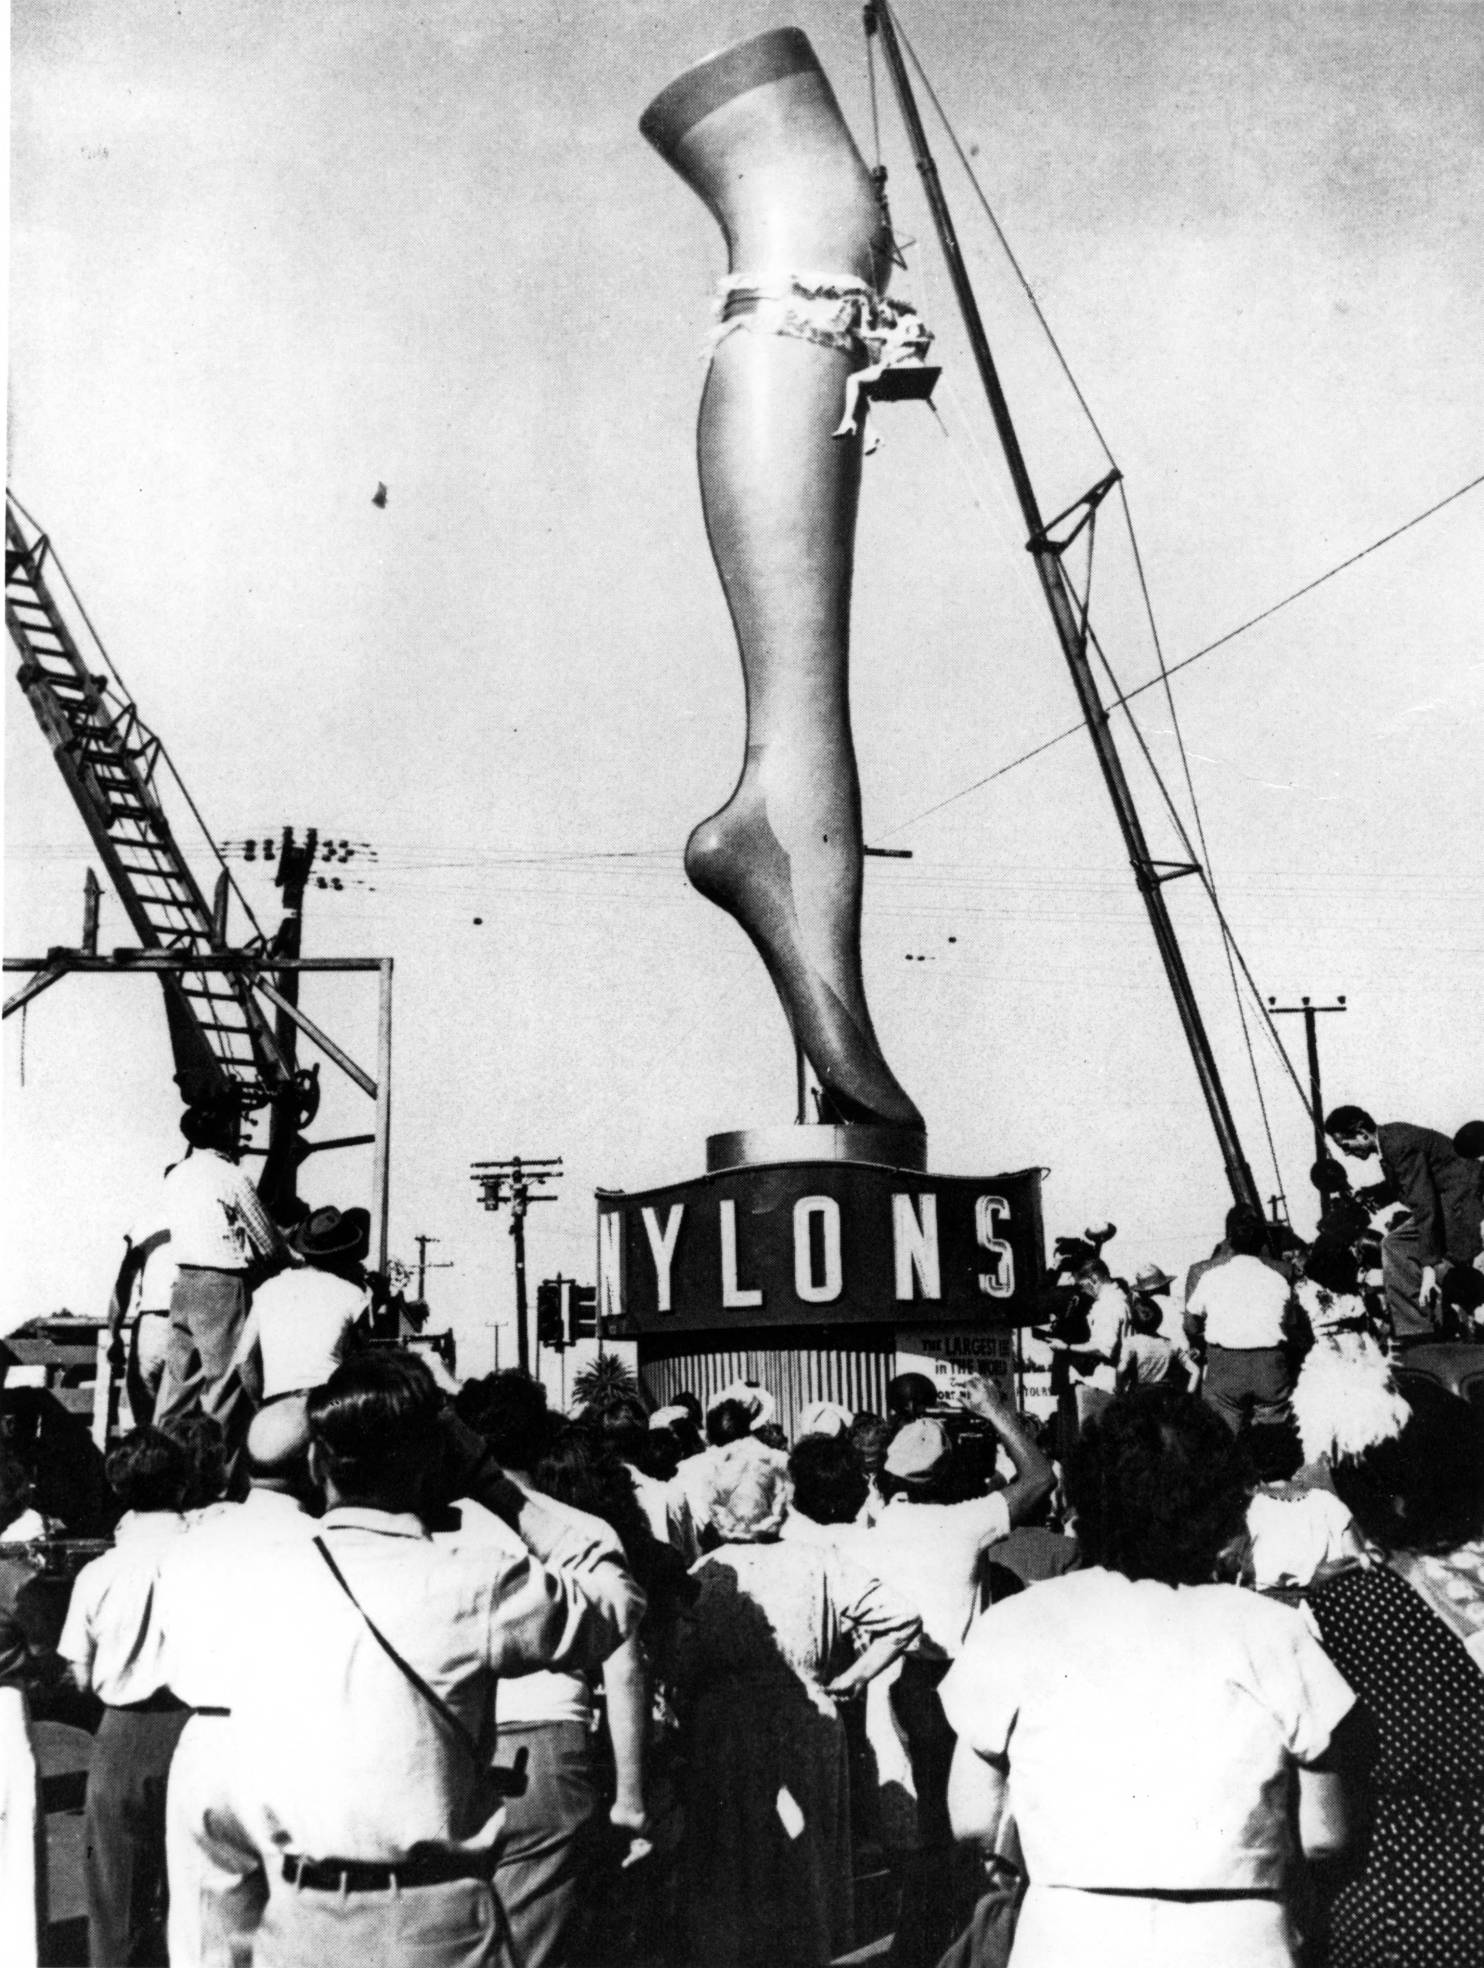 A giant leg, 35 feet high, advertised nylons to the Los Angeles area.